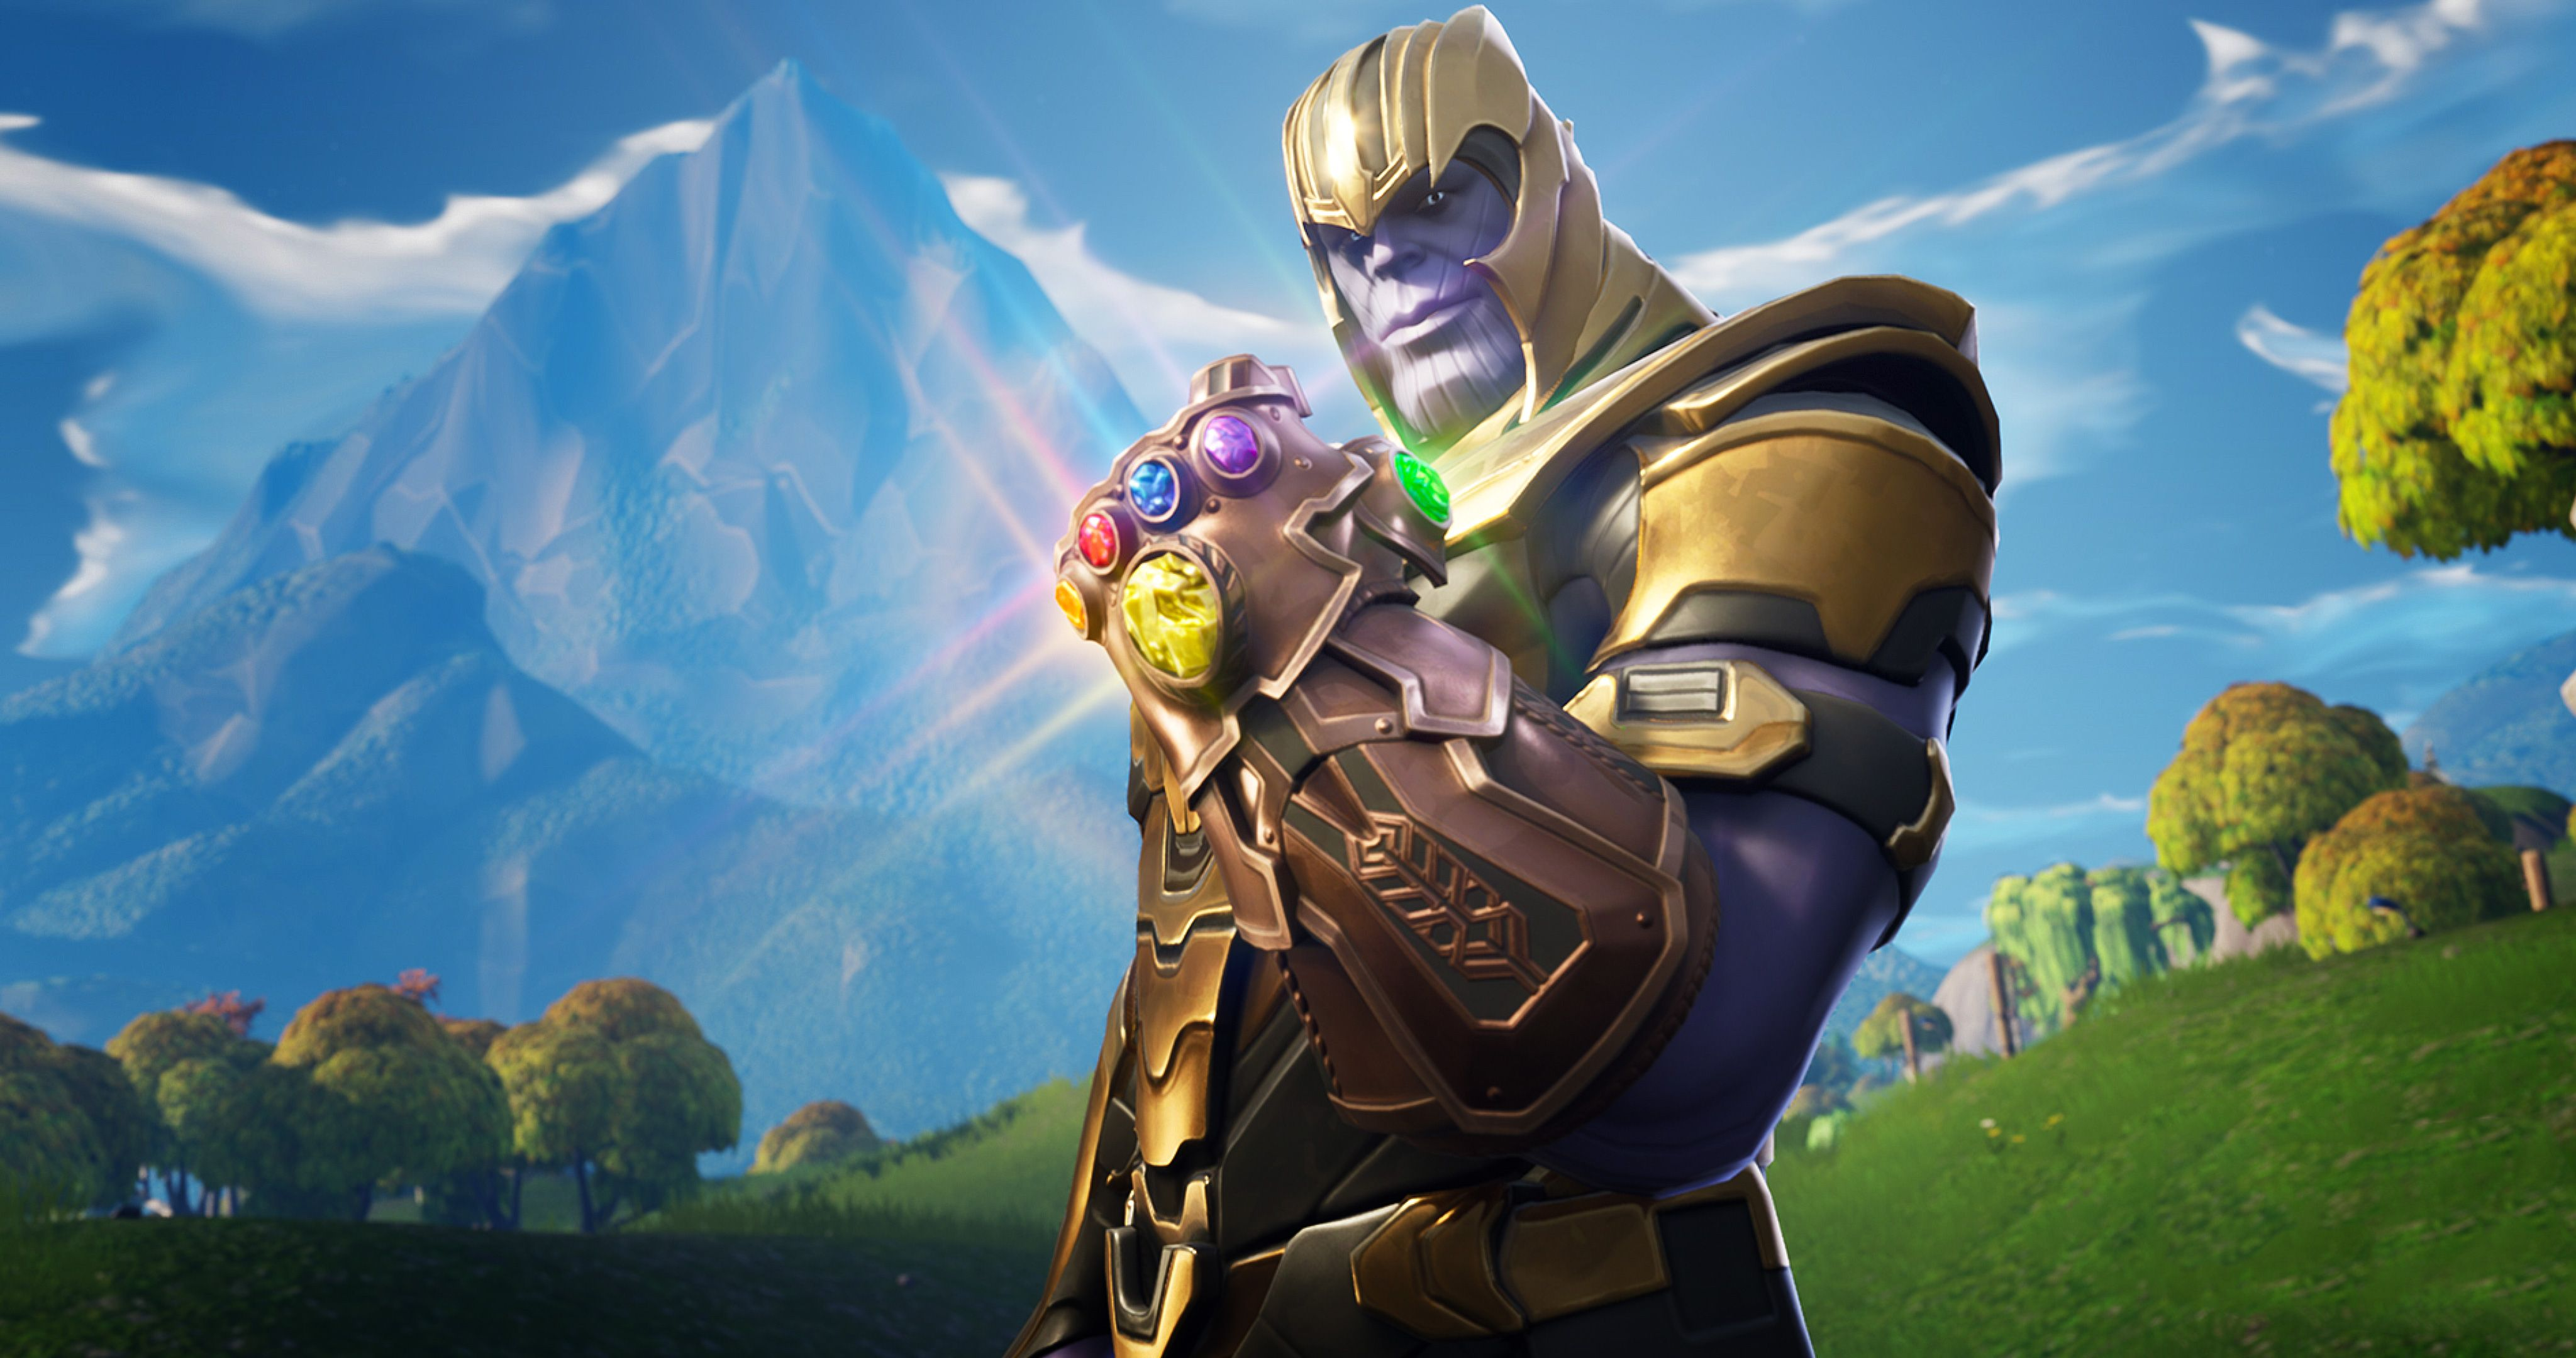 Fortnite Thanos Wallpapers   Top Fortnite Thanos Backgrounds 4096x2160